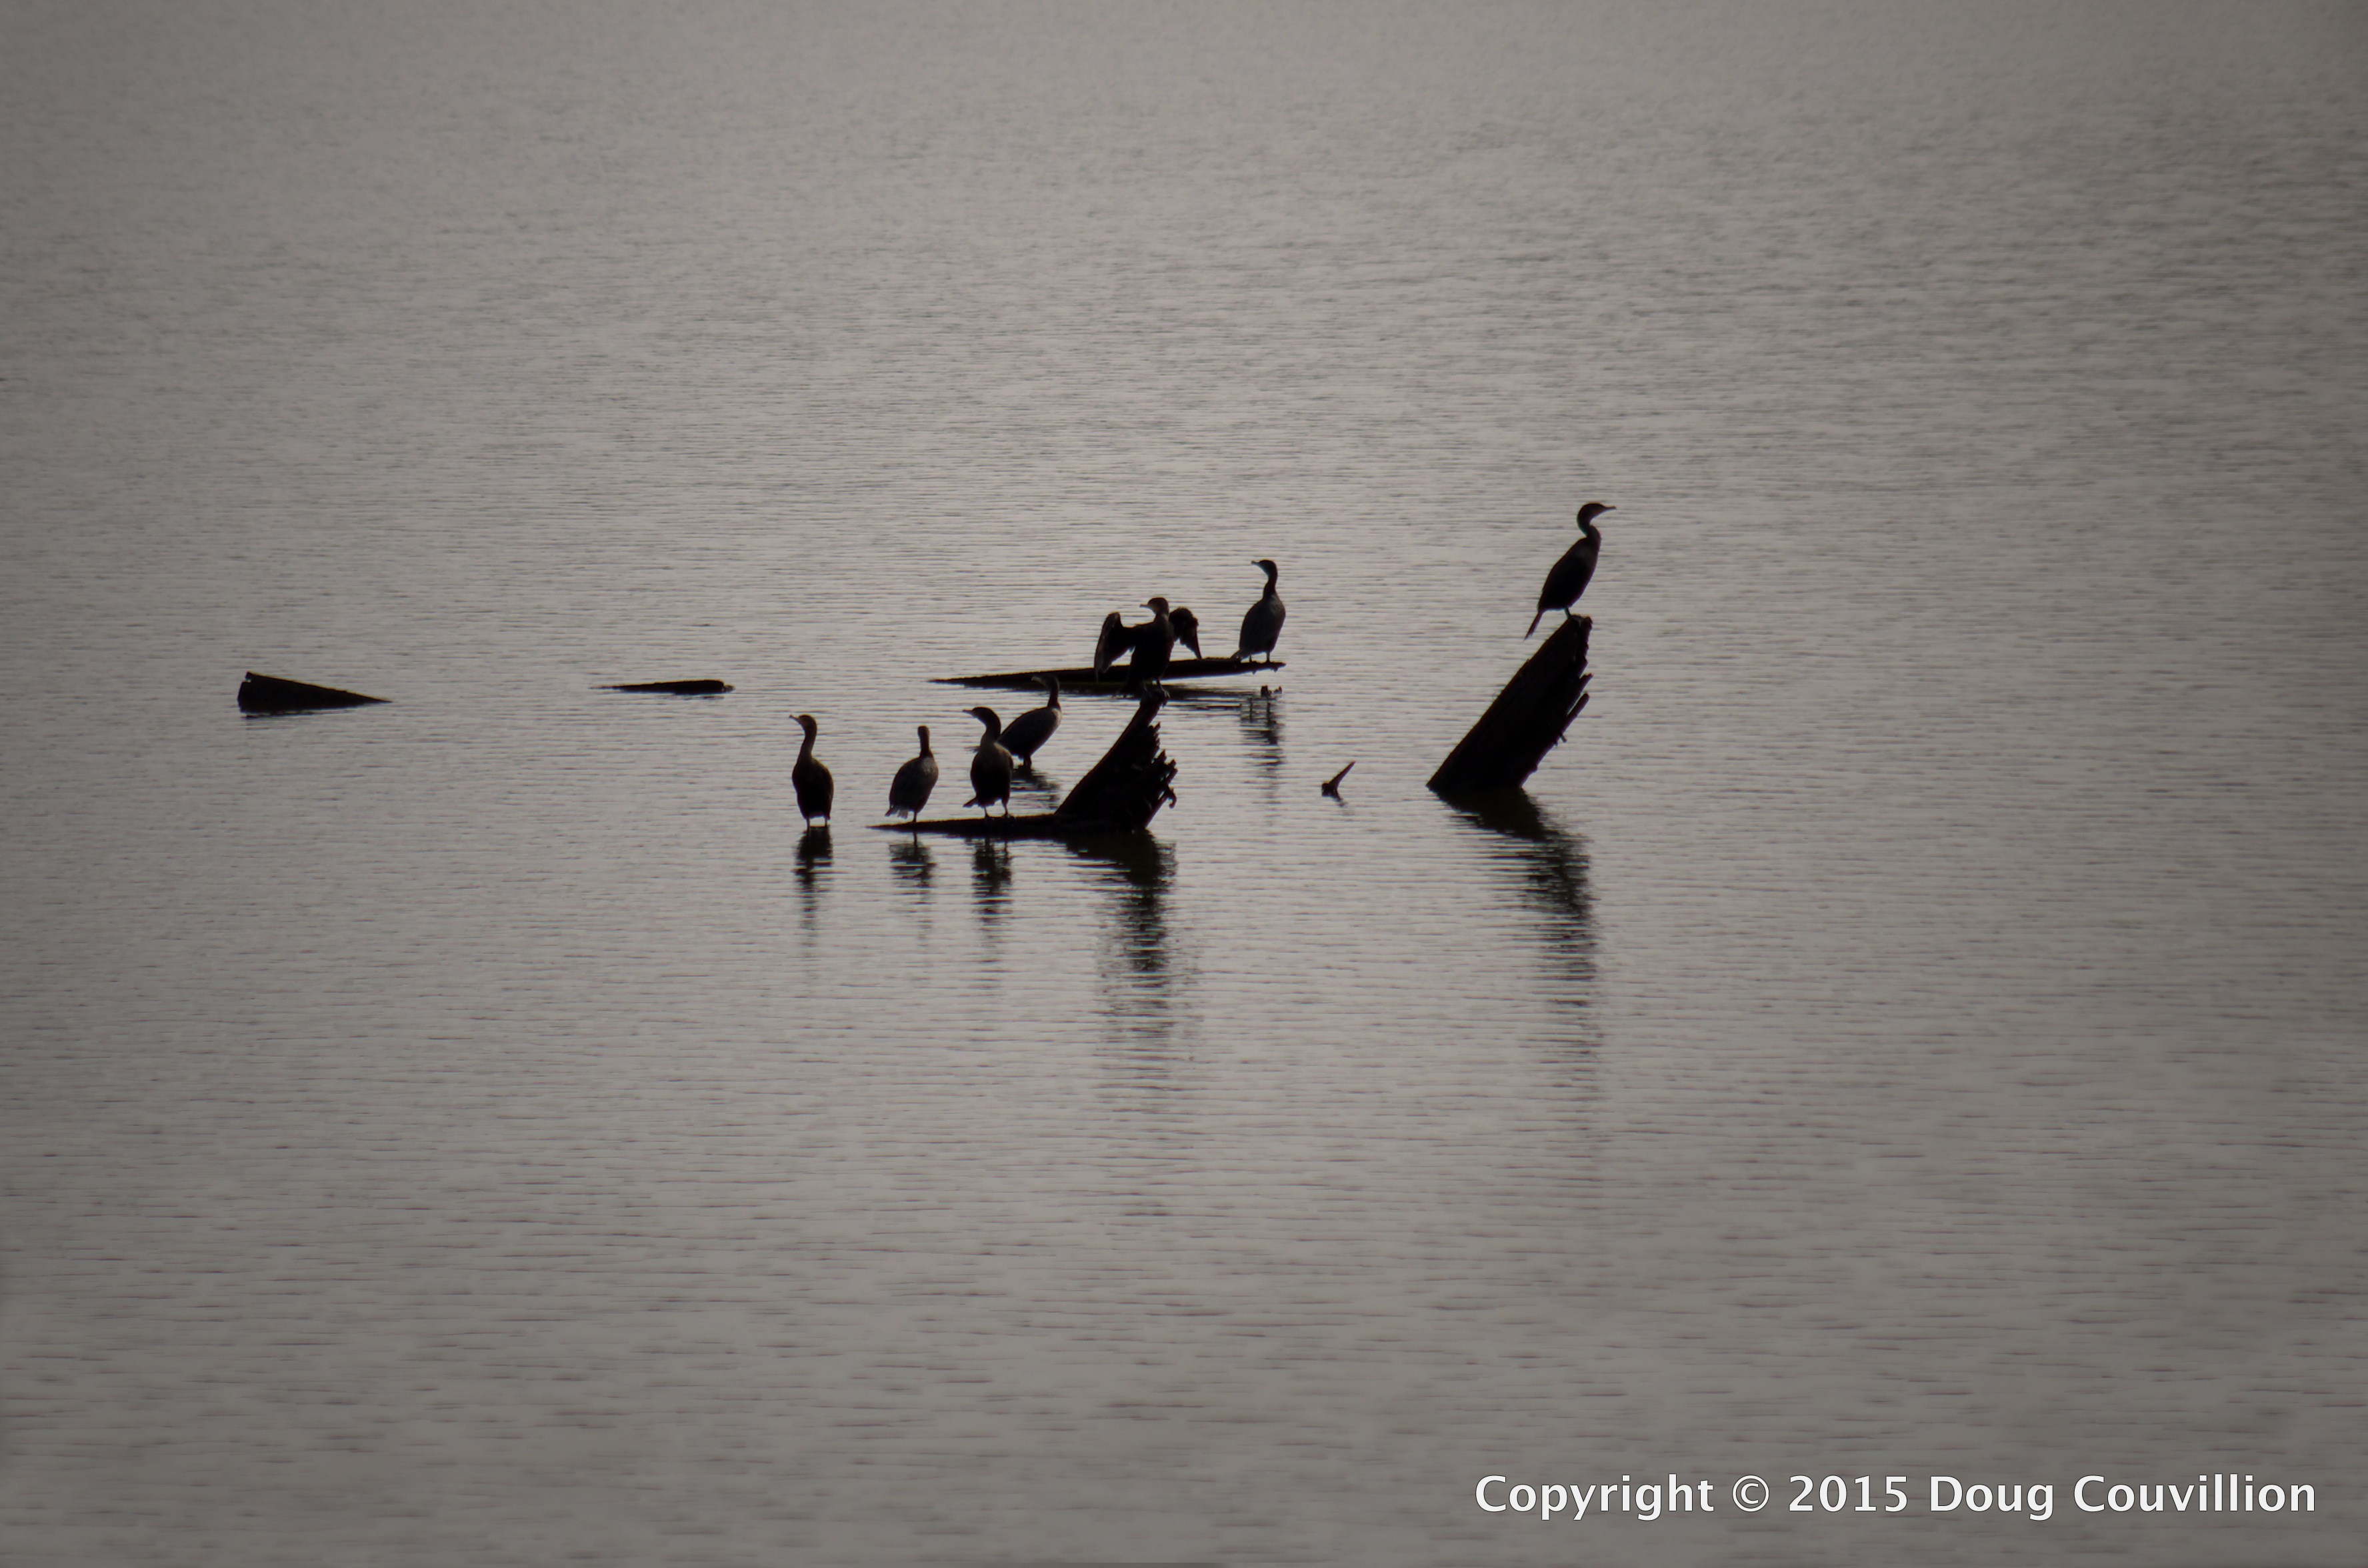 photograph of several anhingas silhouetted on the James River near Richmond, VA